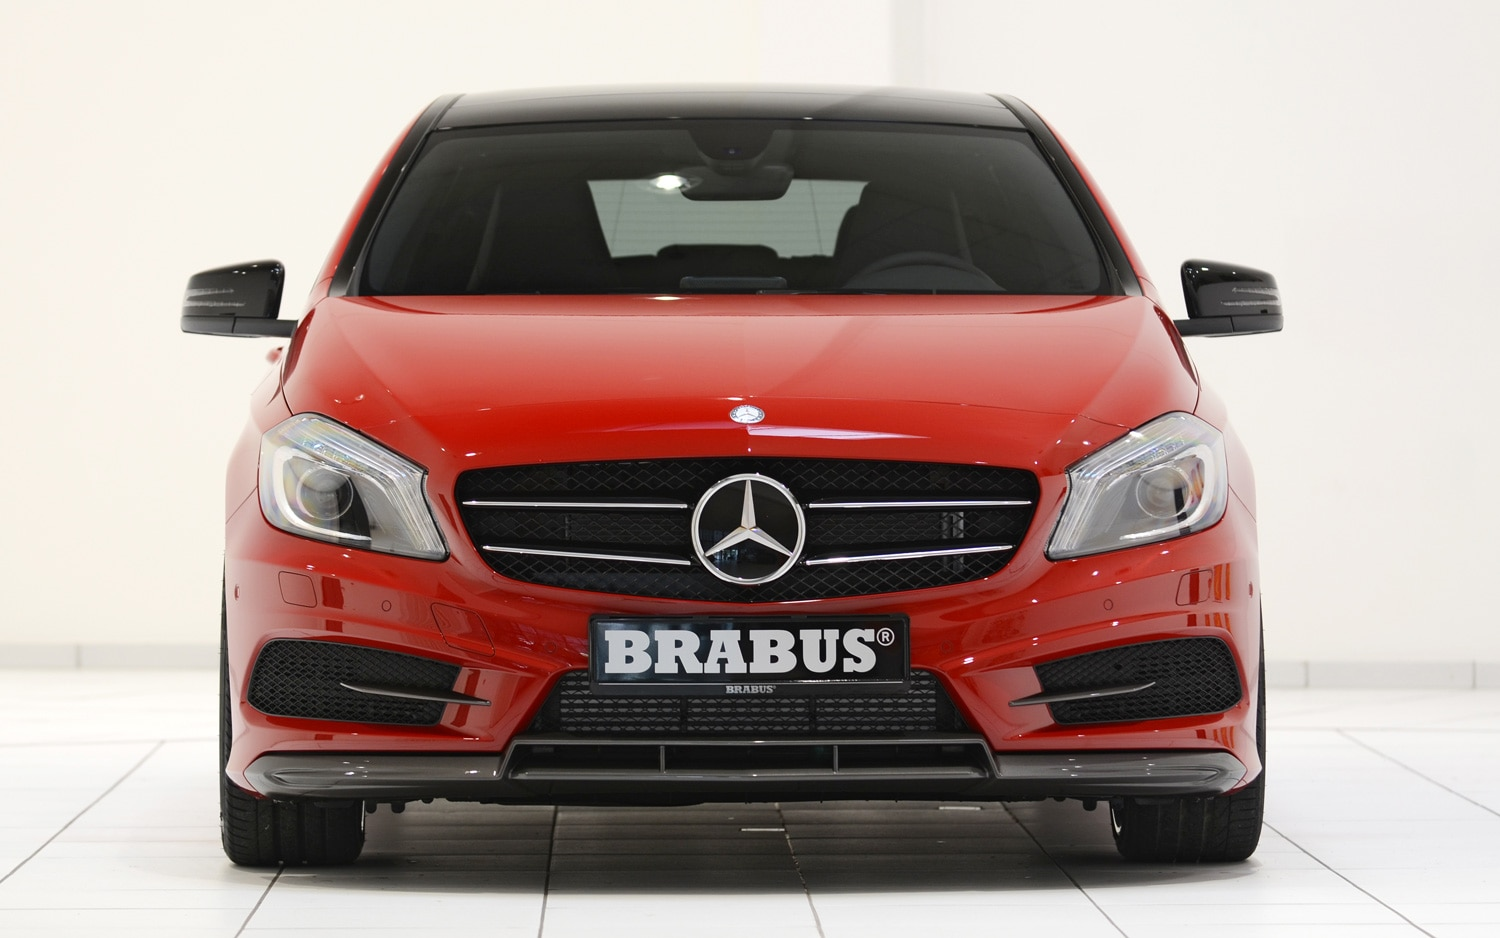 Brabus Reveals Styling Parts New Exhaust For Mercedes